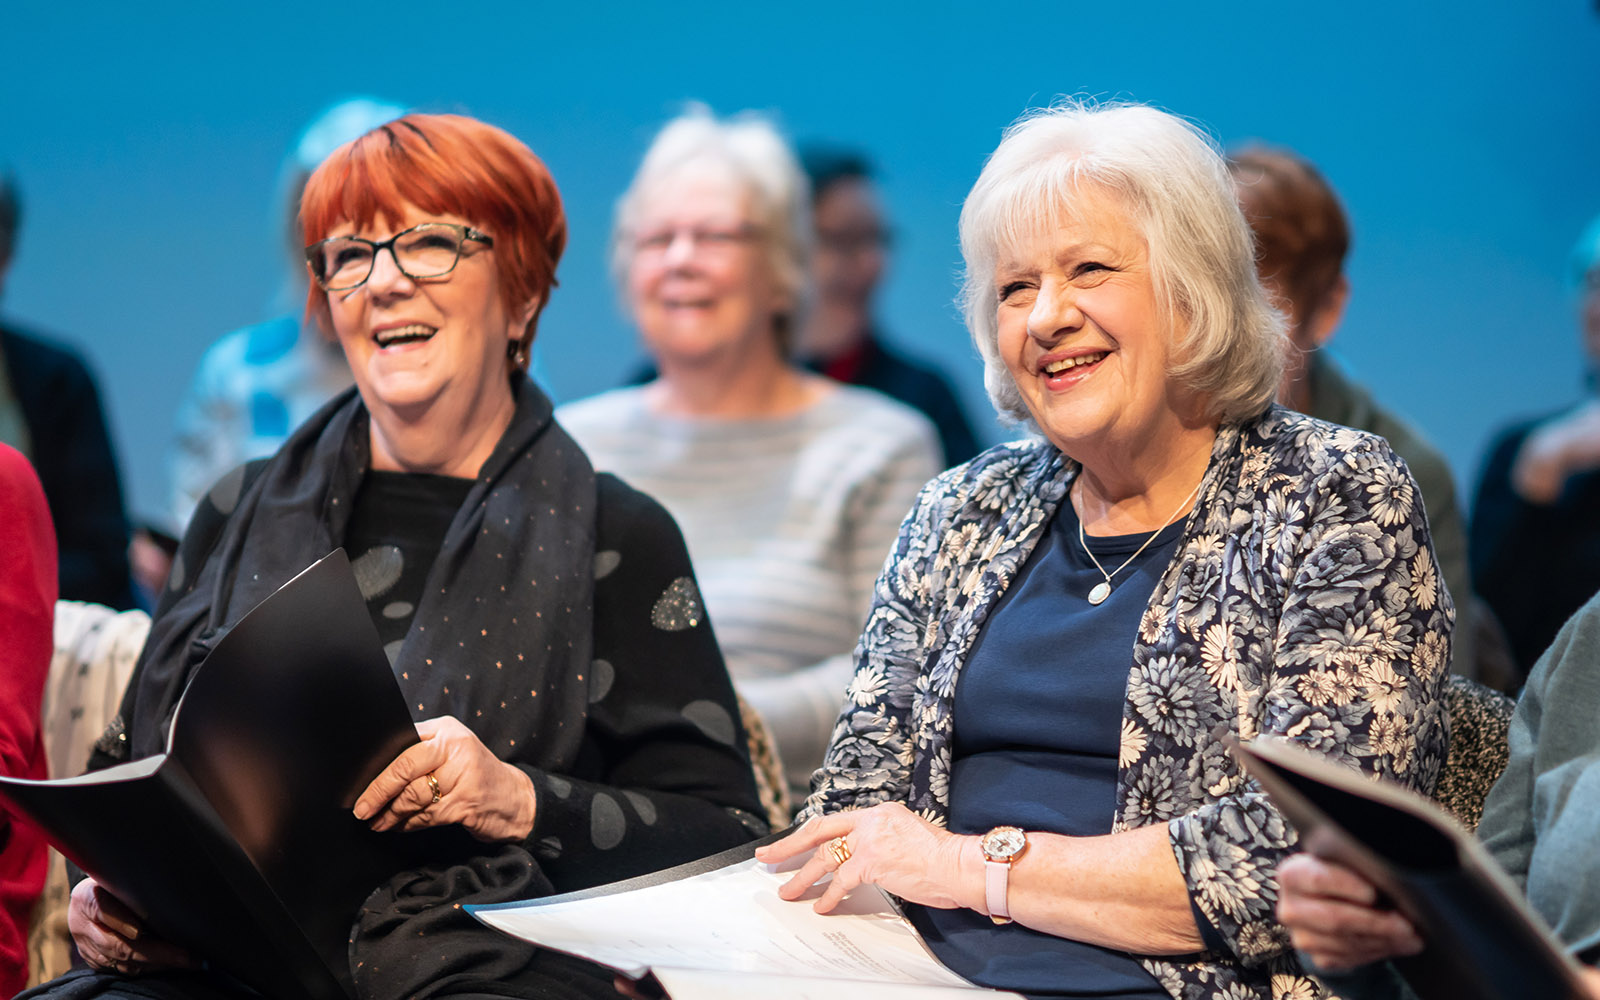 Two women from the community choir smiling